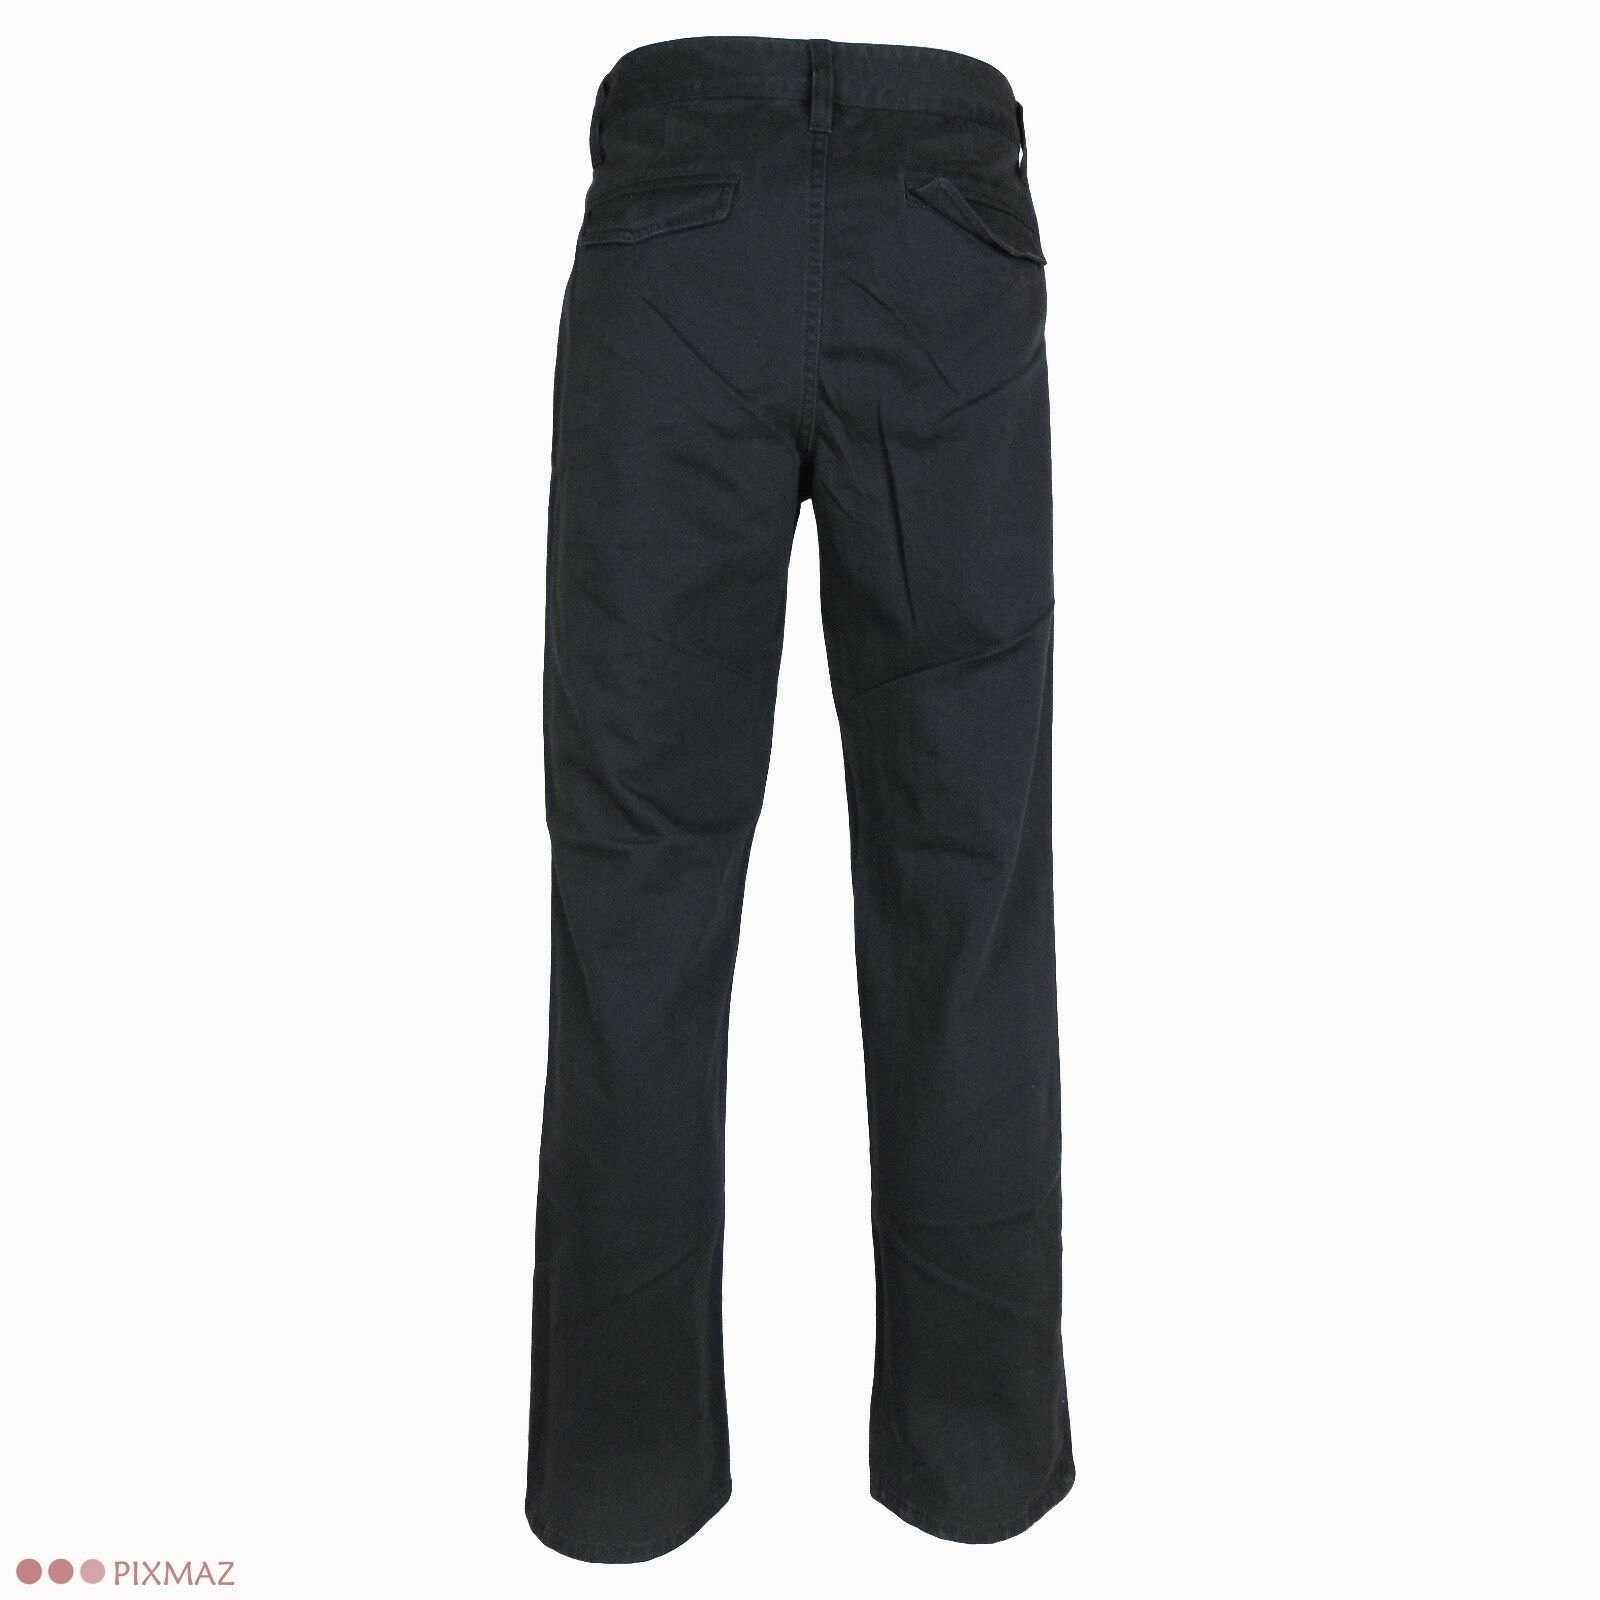 Details about Timberland Men's Twill Navy Chino Standard Coupe Regualr Pants Style #6311J